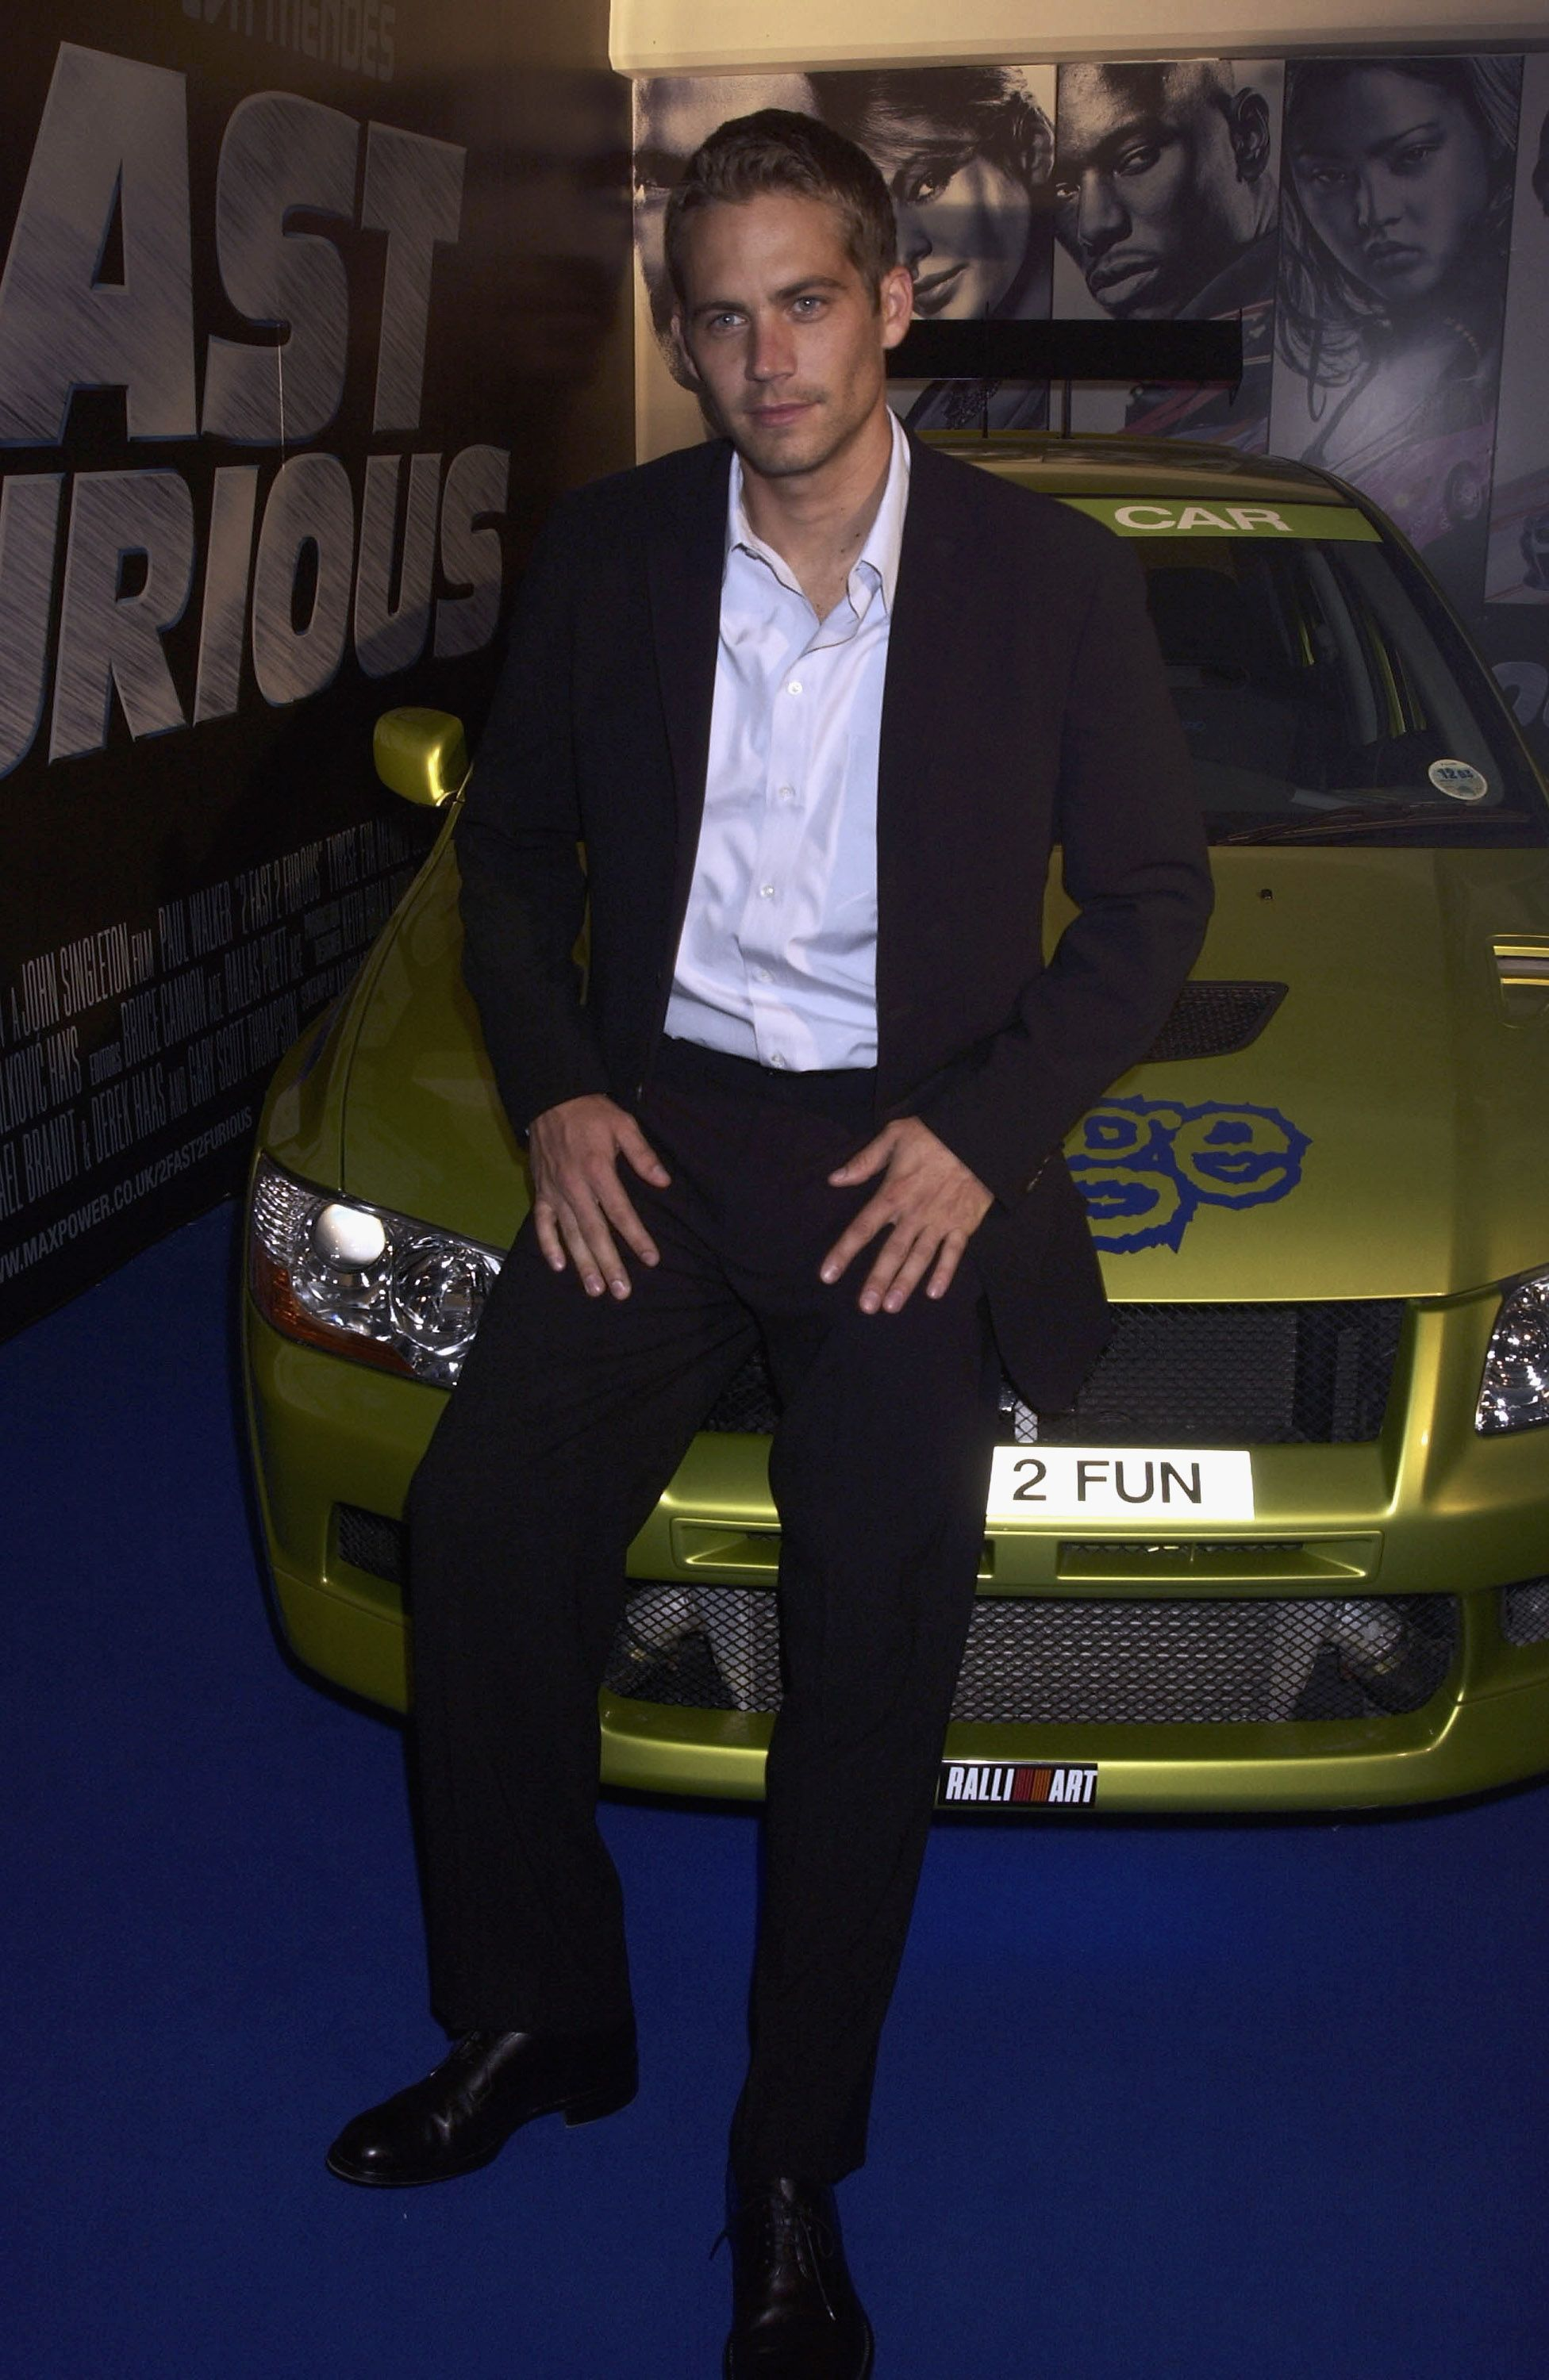 The star of the Fast and Furious saga Paul Walker / Getty Images